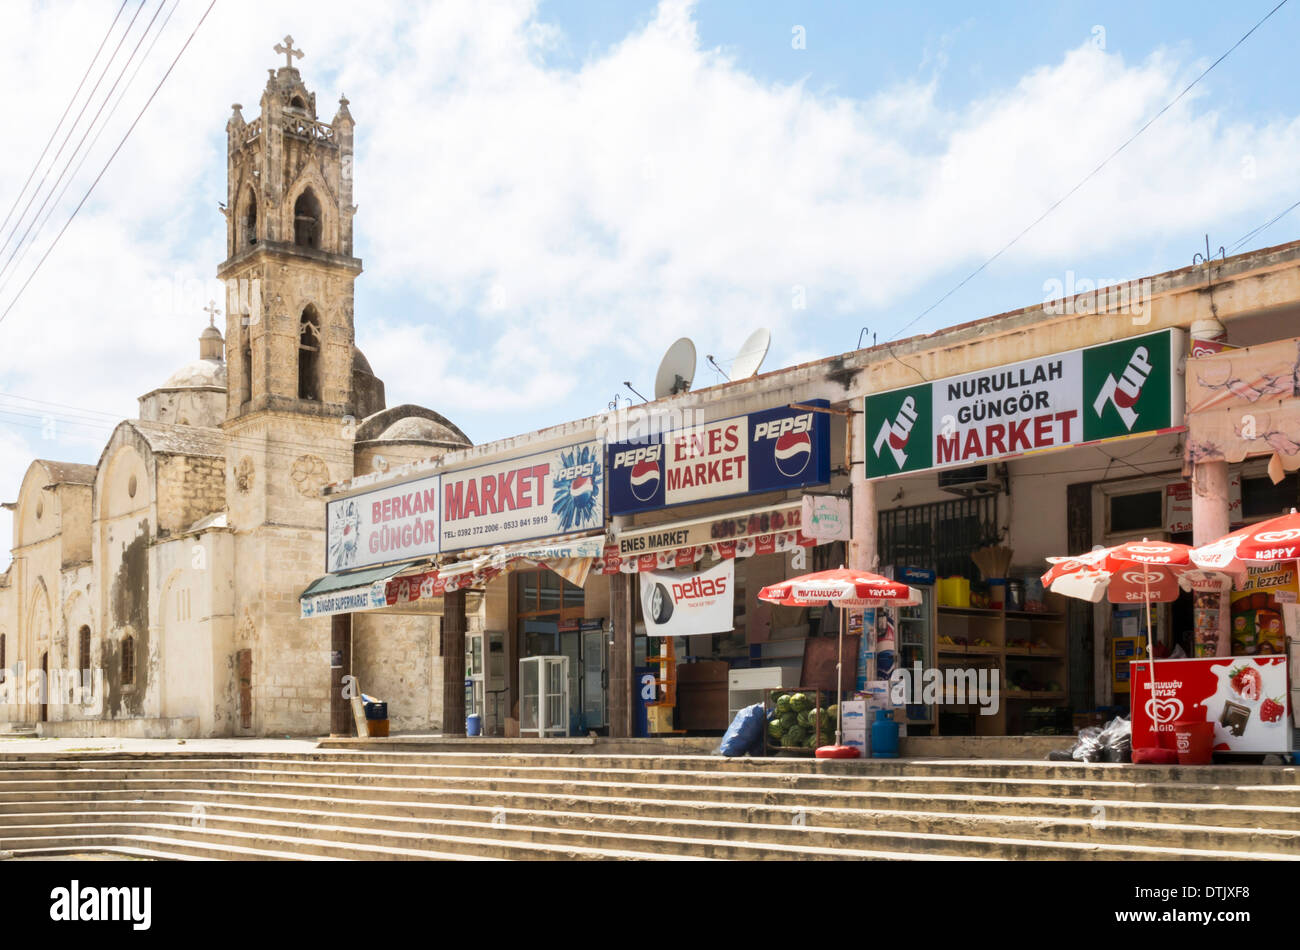 Terrace of Shops in Dipkarpaz Northern Cyprus - Stock Image